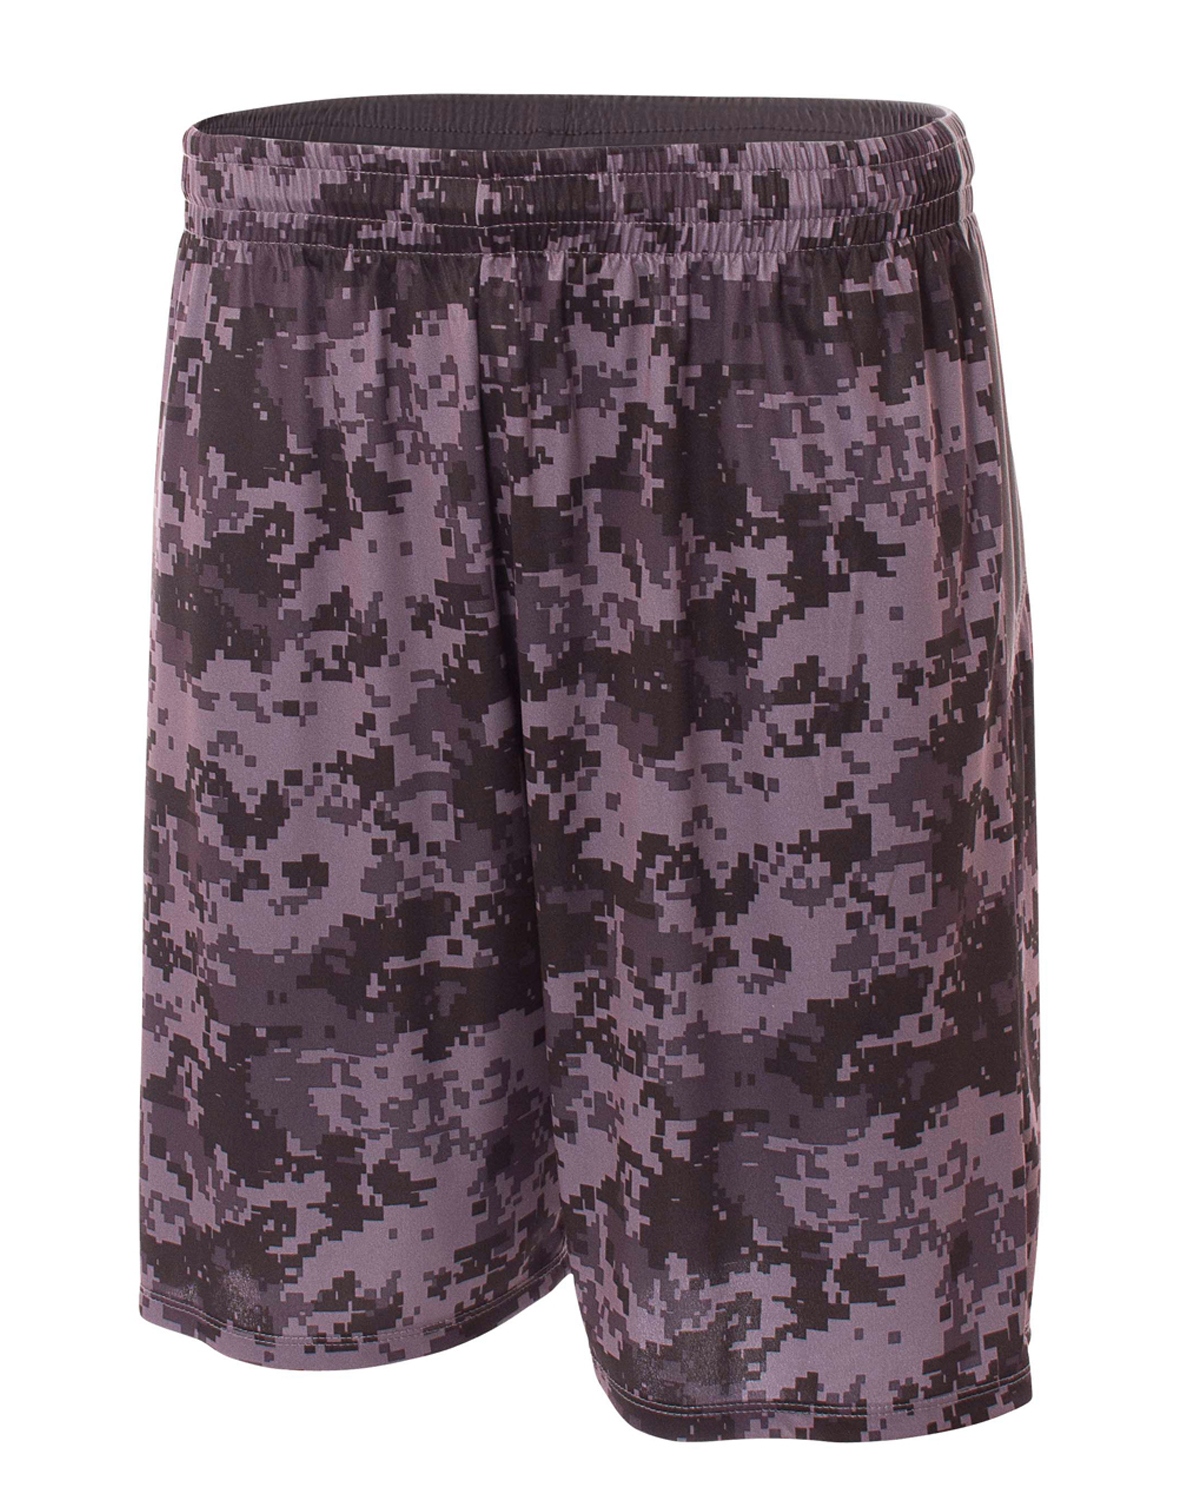 A4 Drop Ship - N5322 Adult Ten Inch Inseam Printed Camo ...